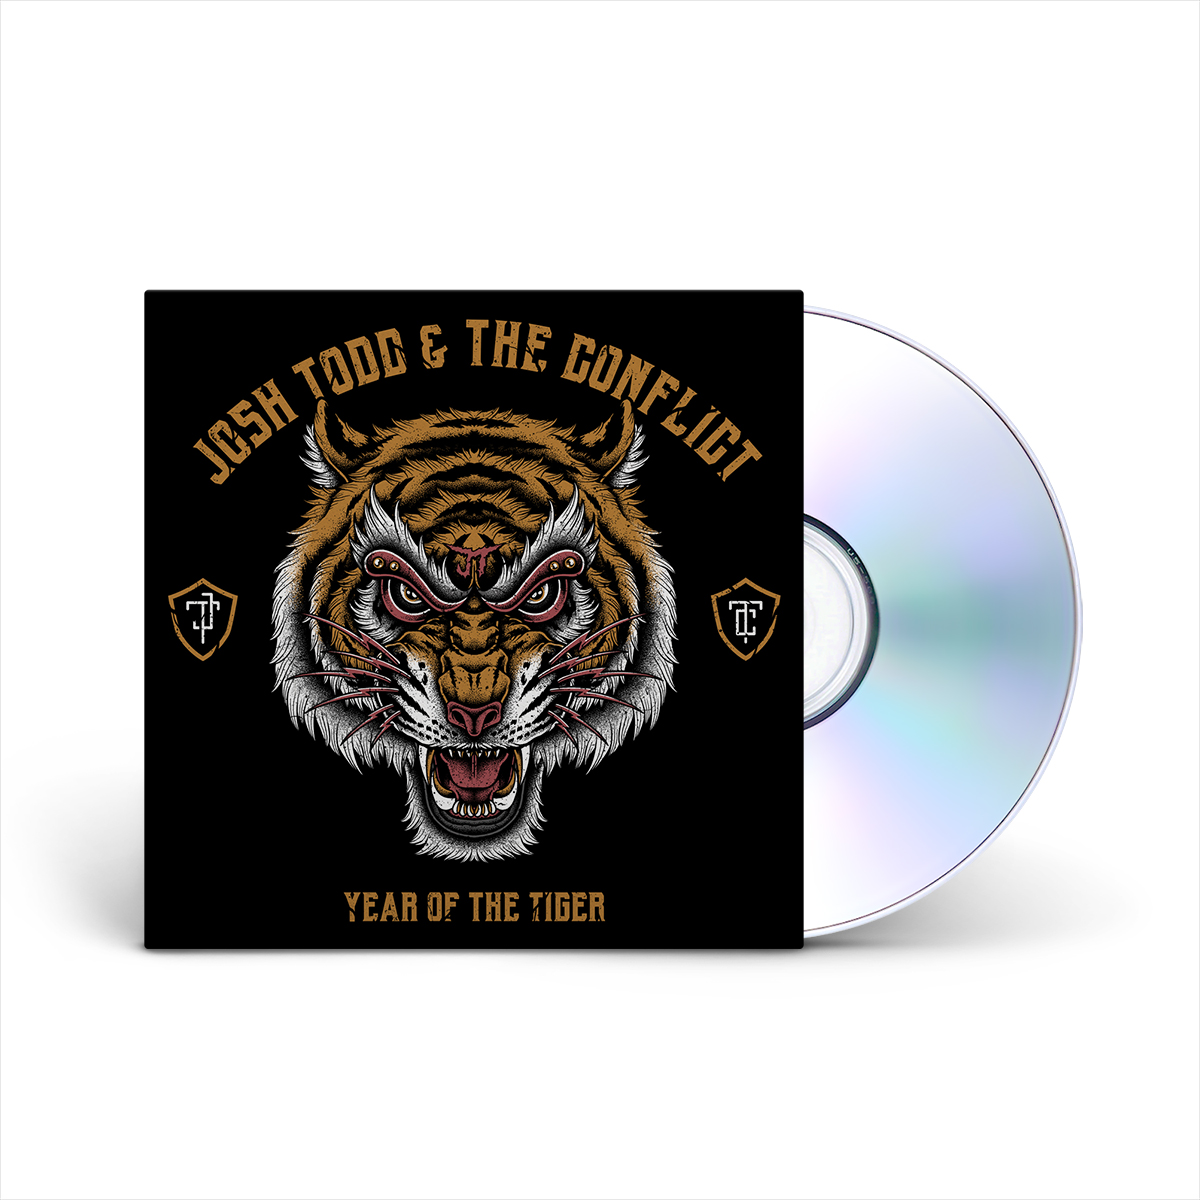 Josh Todd & The Conflict - Year Of The Tiger CD